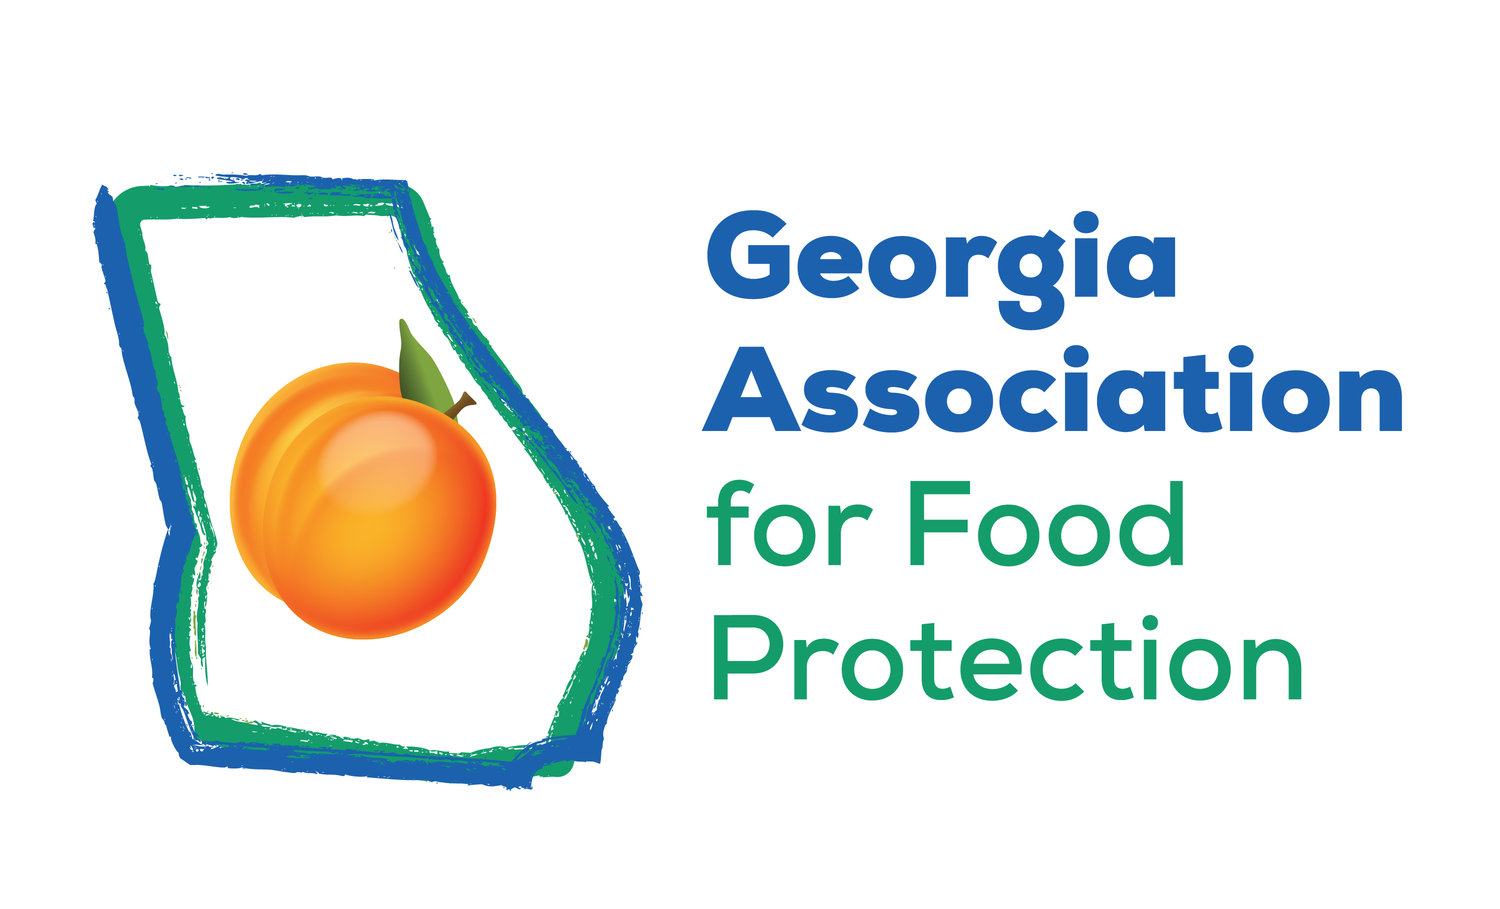 Awards & Recognition — Georgia Association for Food Protection